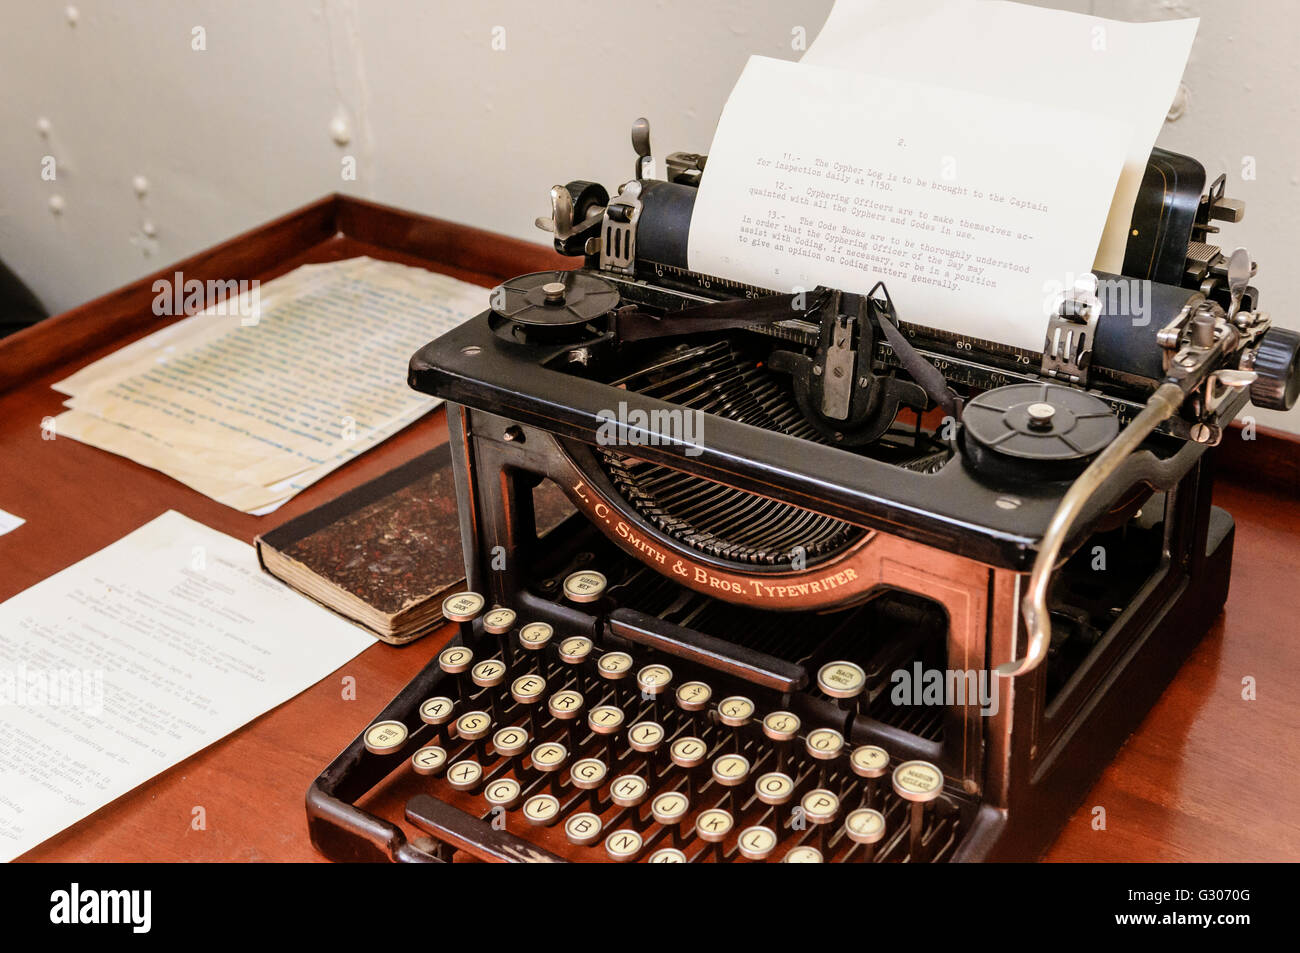 Old Office Desk And Typewriter From Early 1900s.